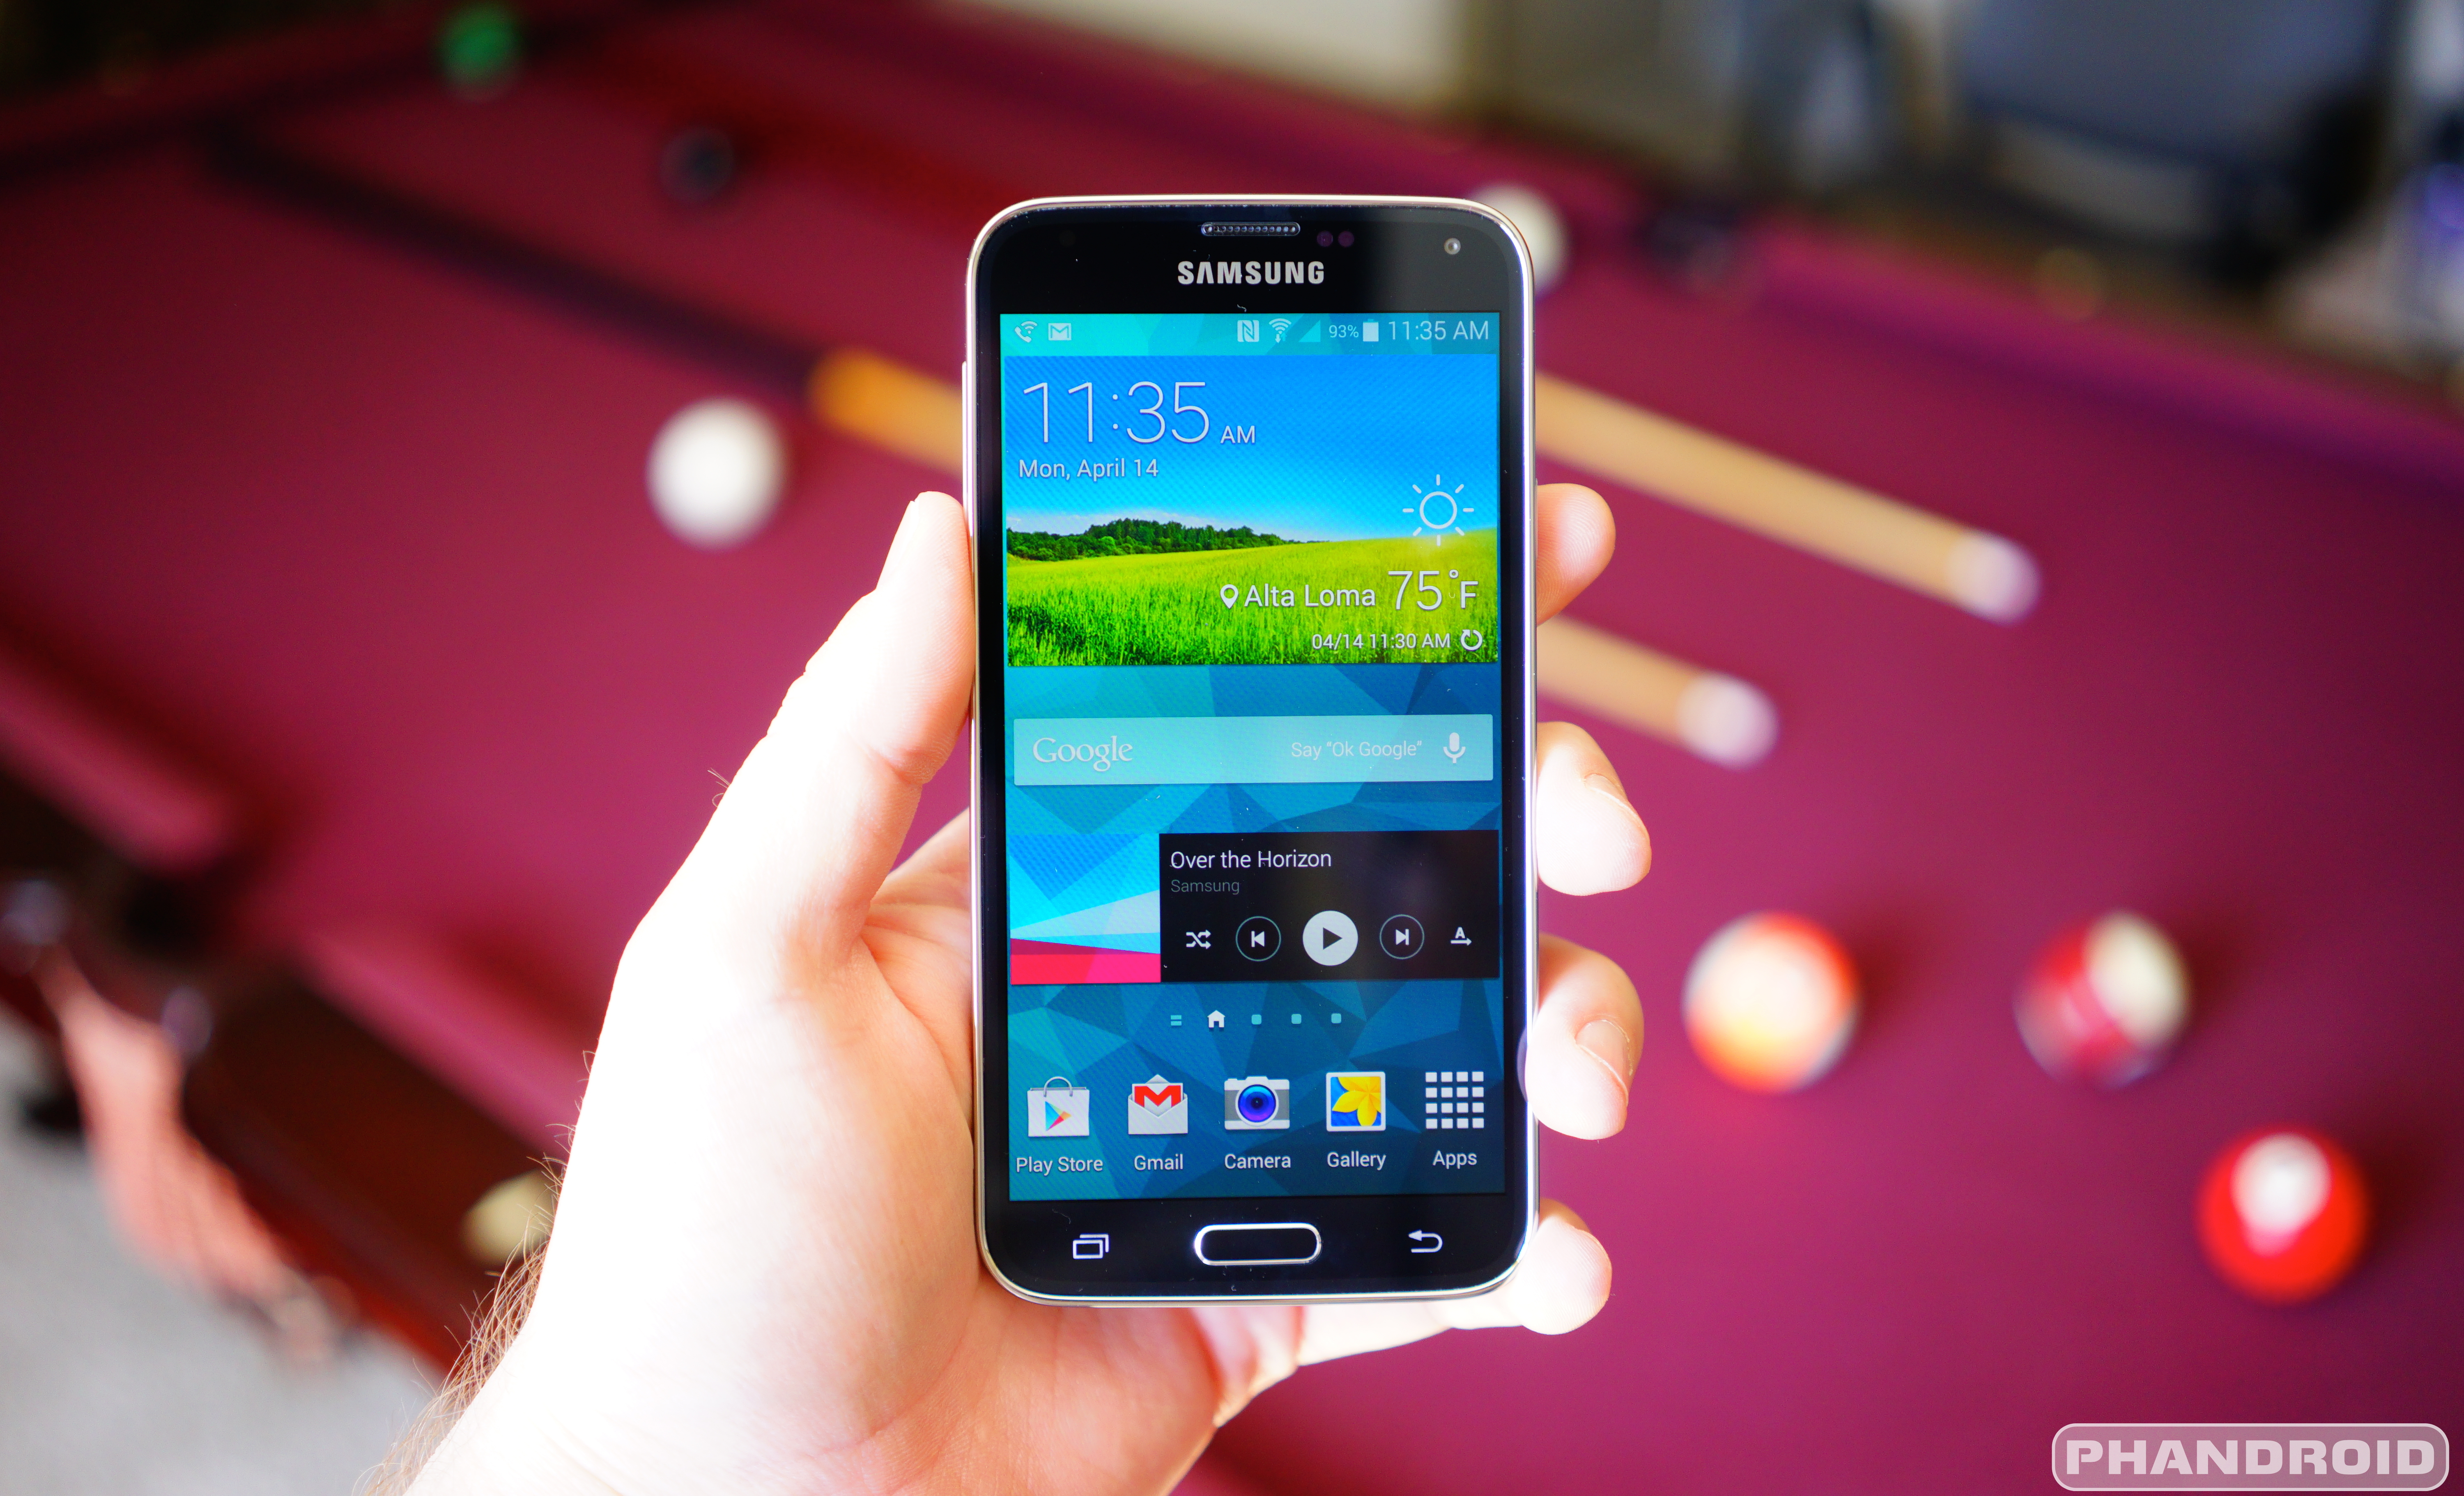 Android 5 0 Lollipop Upgrade For The Samsung Galaxy S5